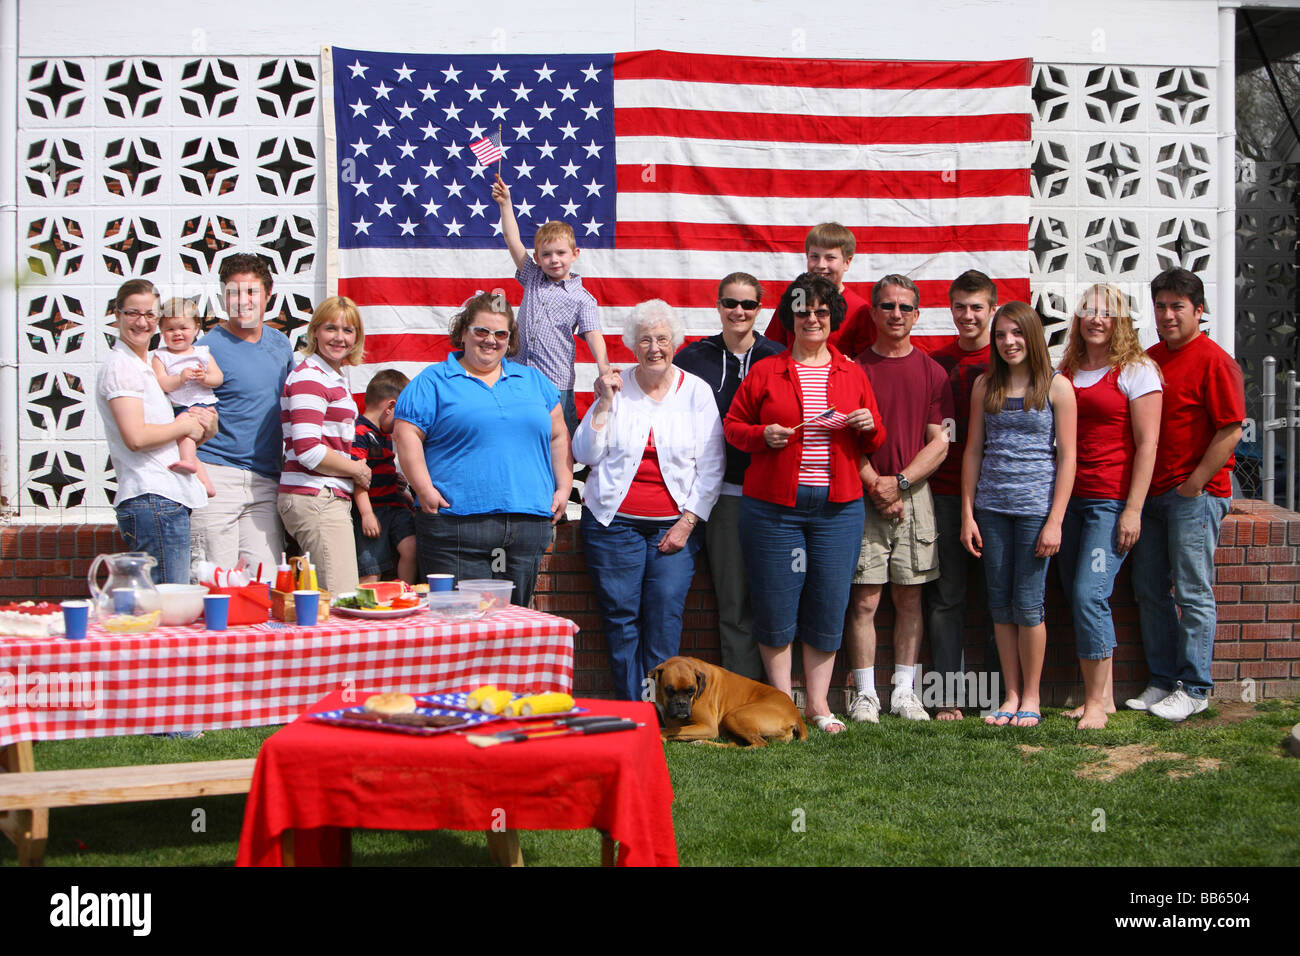 Large family group portrait at 4th of July Barbecue - Stock Image